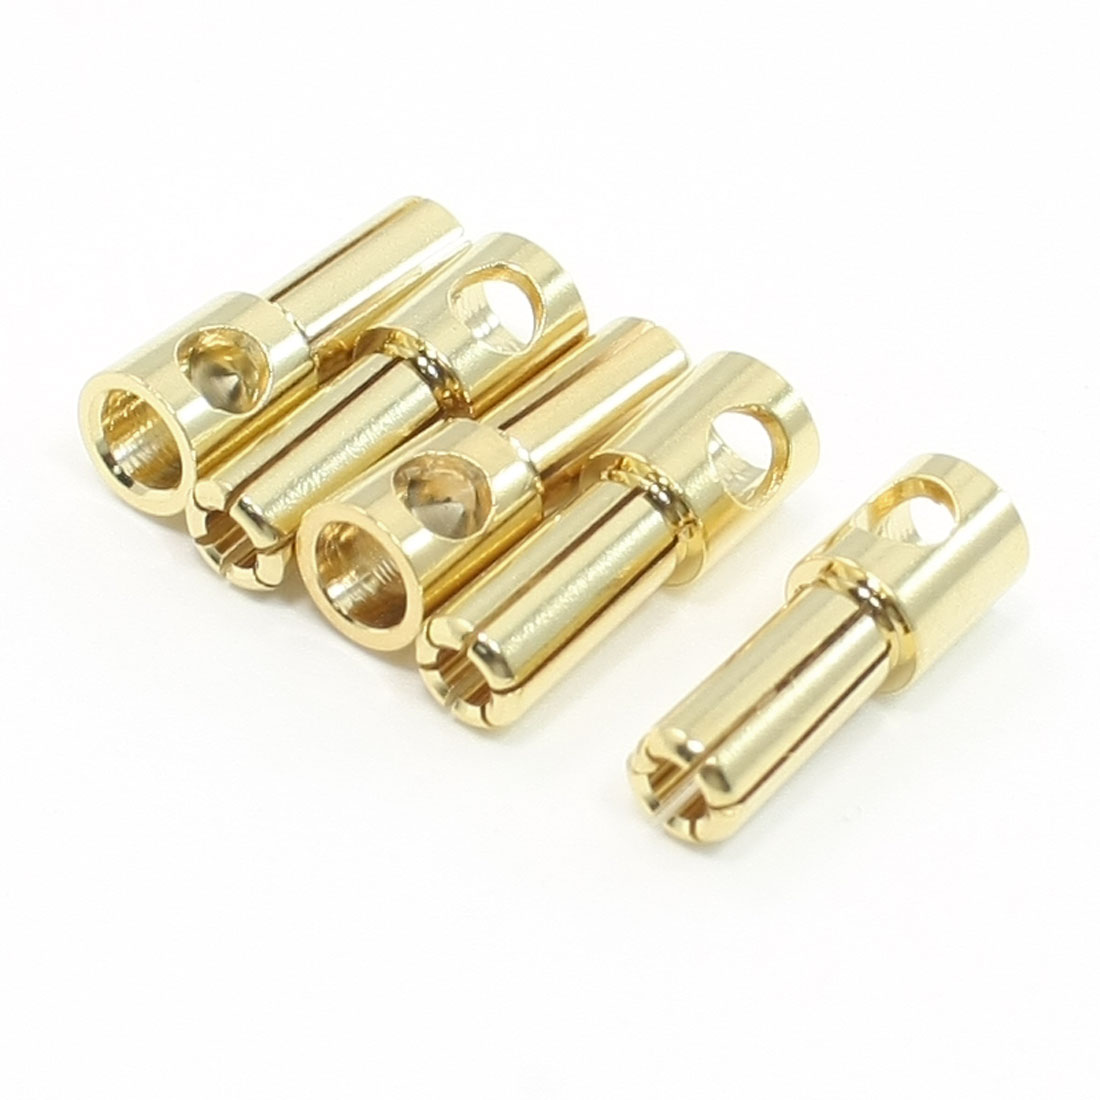 5 Pcs Gold Tone Plated 5mm Inside Dia Male Banana Connector